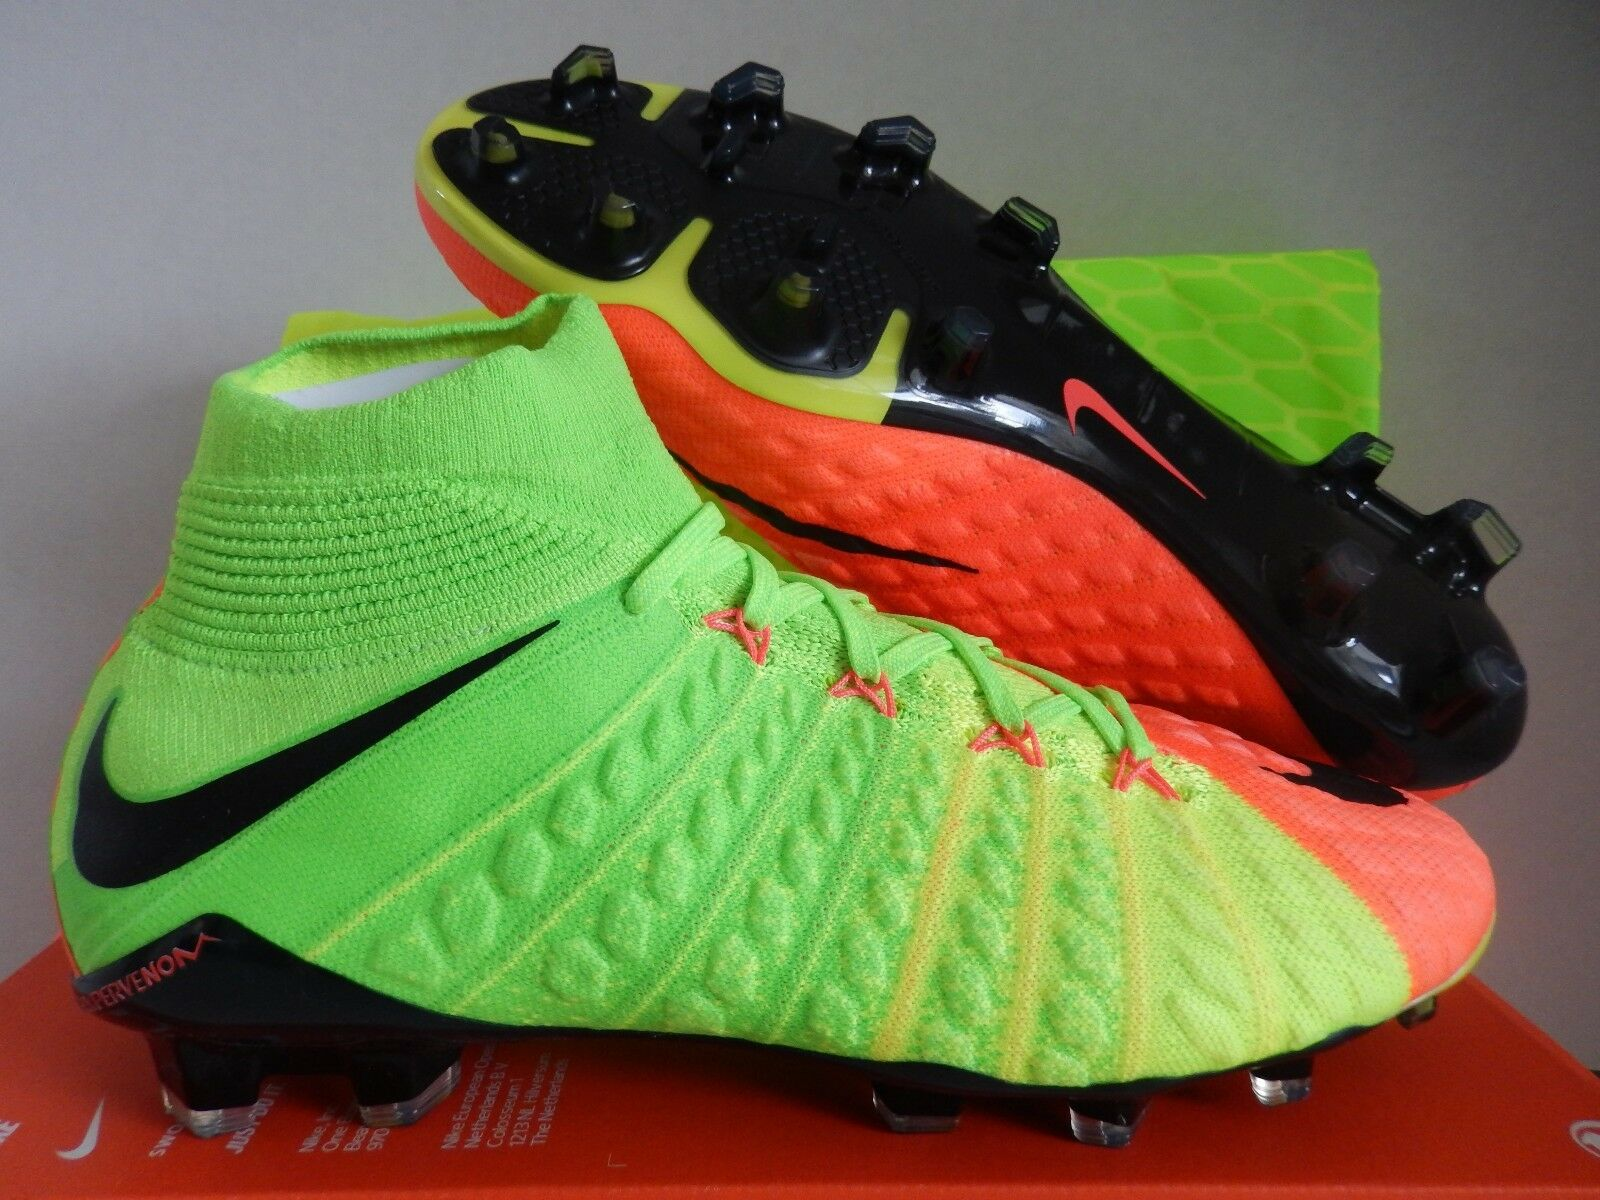 NIKE HYPERVENOM PHANTOM III DF FG ELECTRIC GREEN-BLACK SZ 10.5 [860643-308]